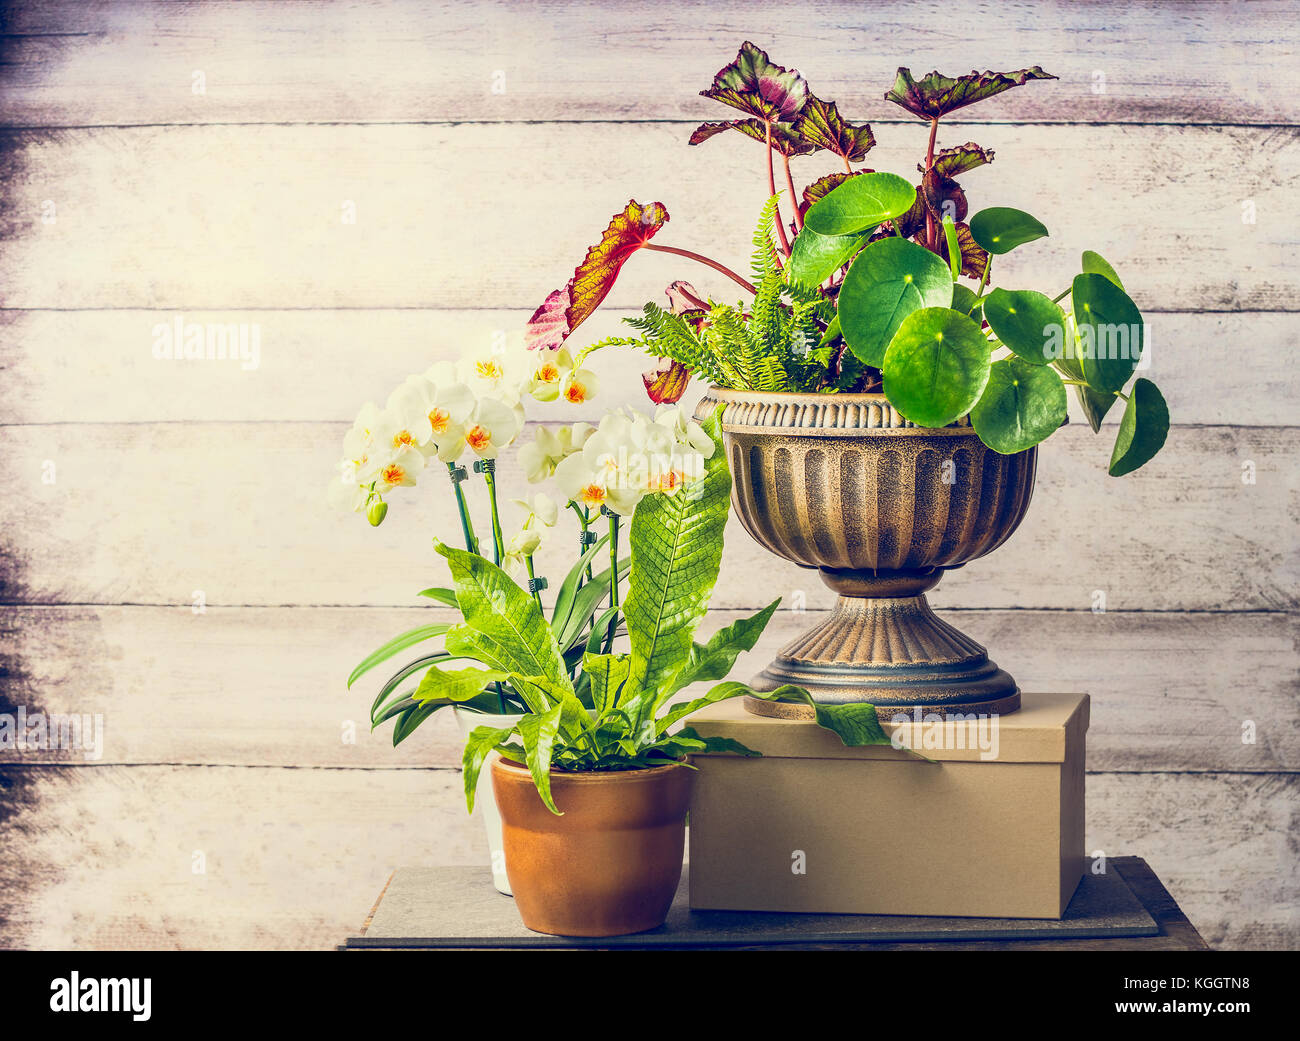 Pretty plants and orchid flowers for indoor container gardening pretty plants and orchid flowers for indoor container gardening front view mightylinksfo